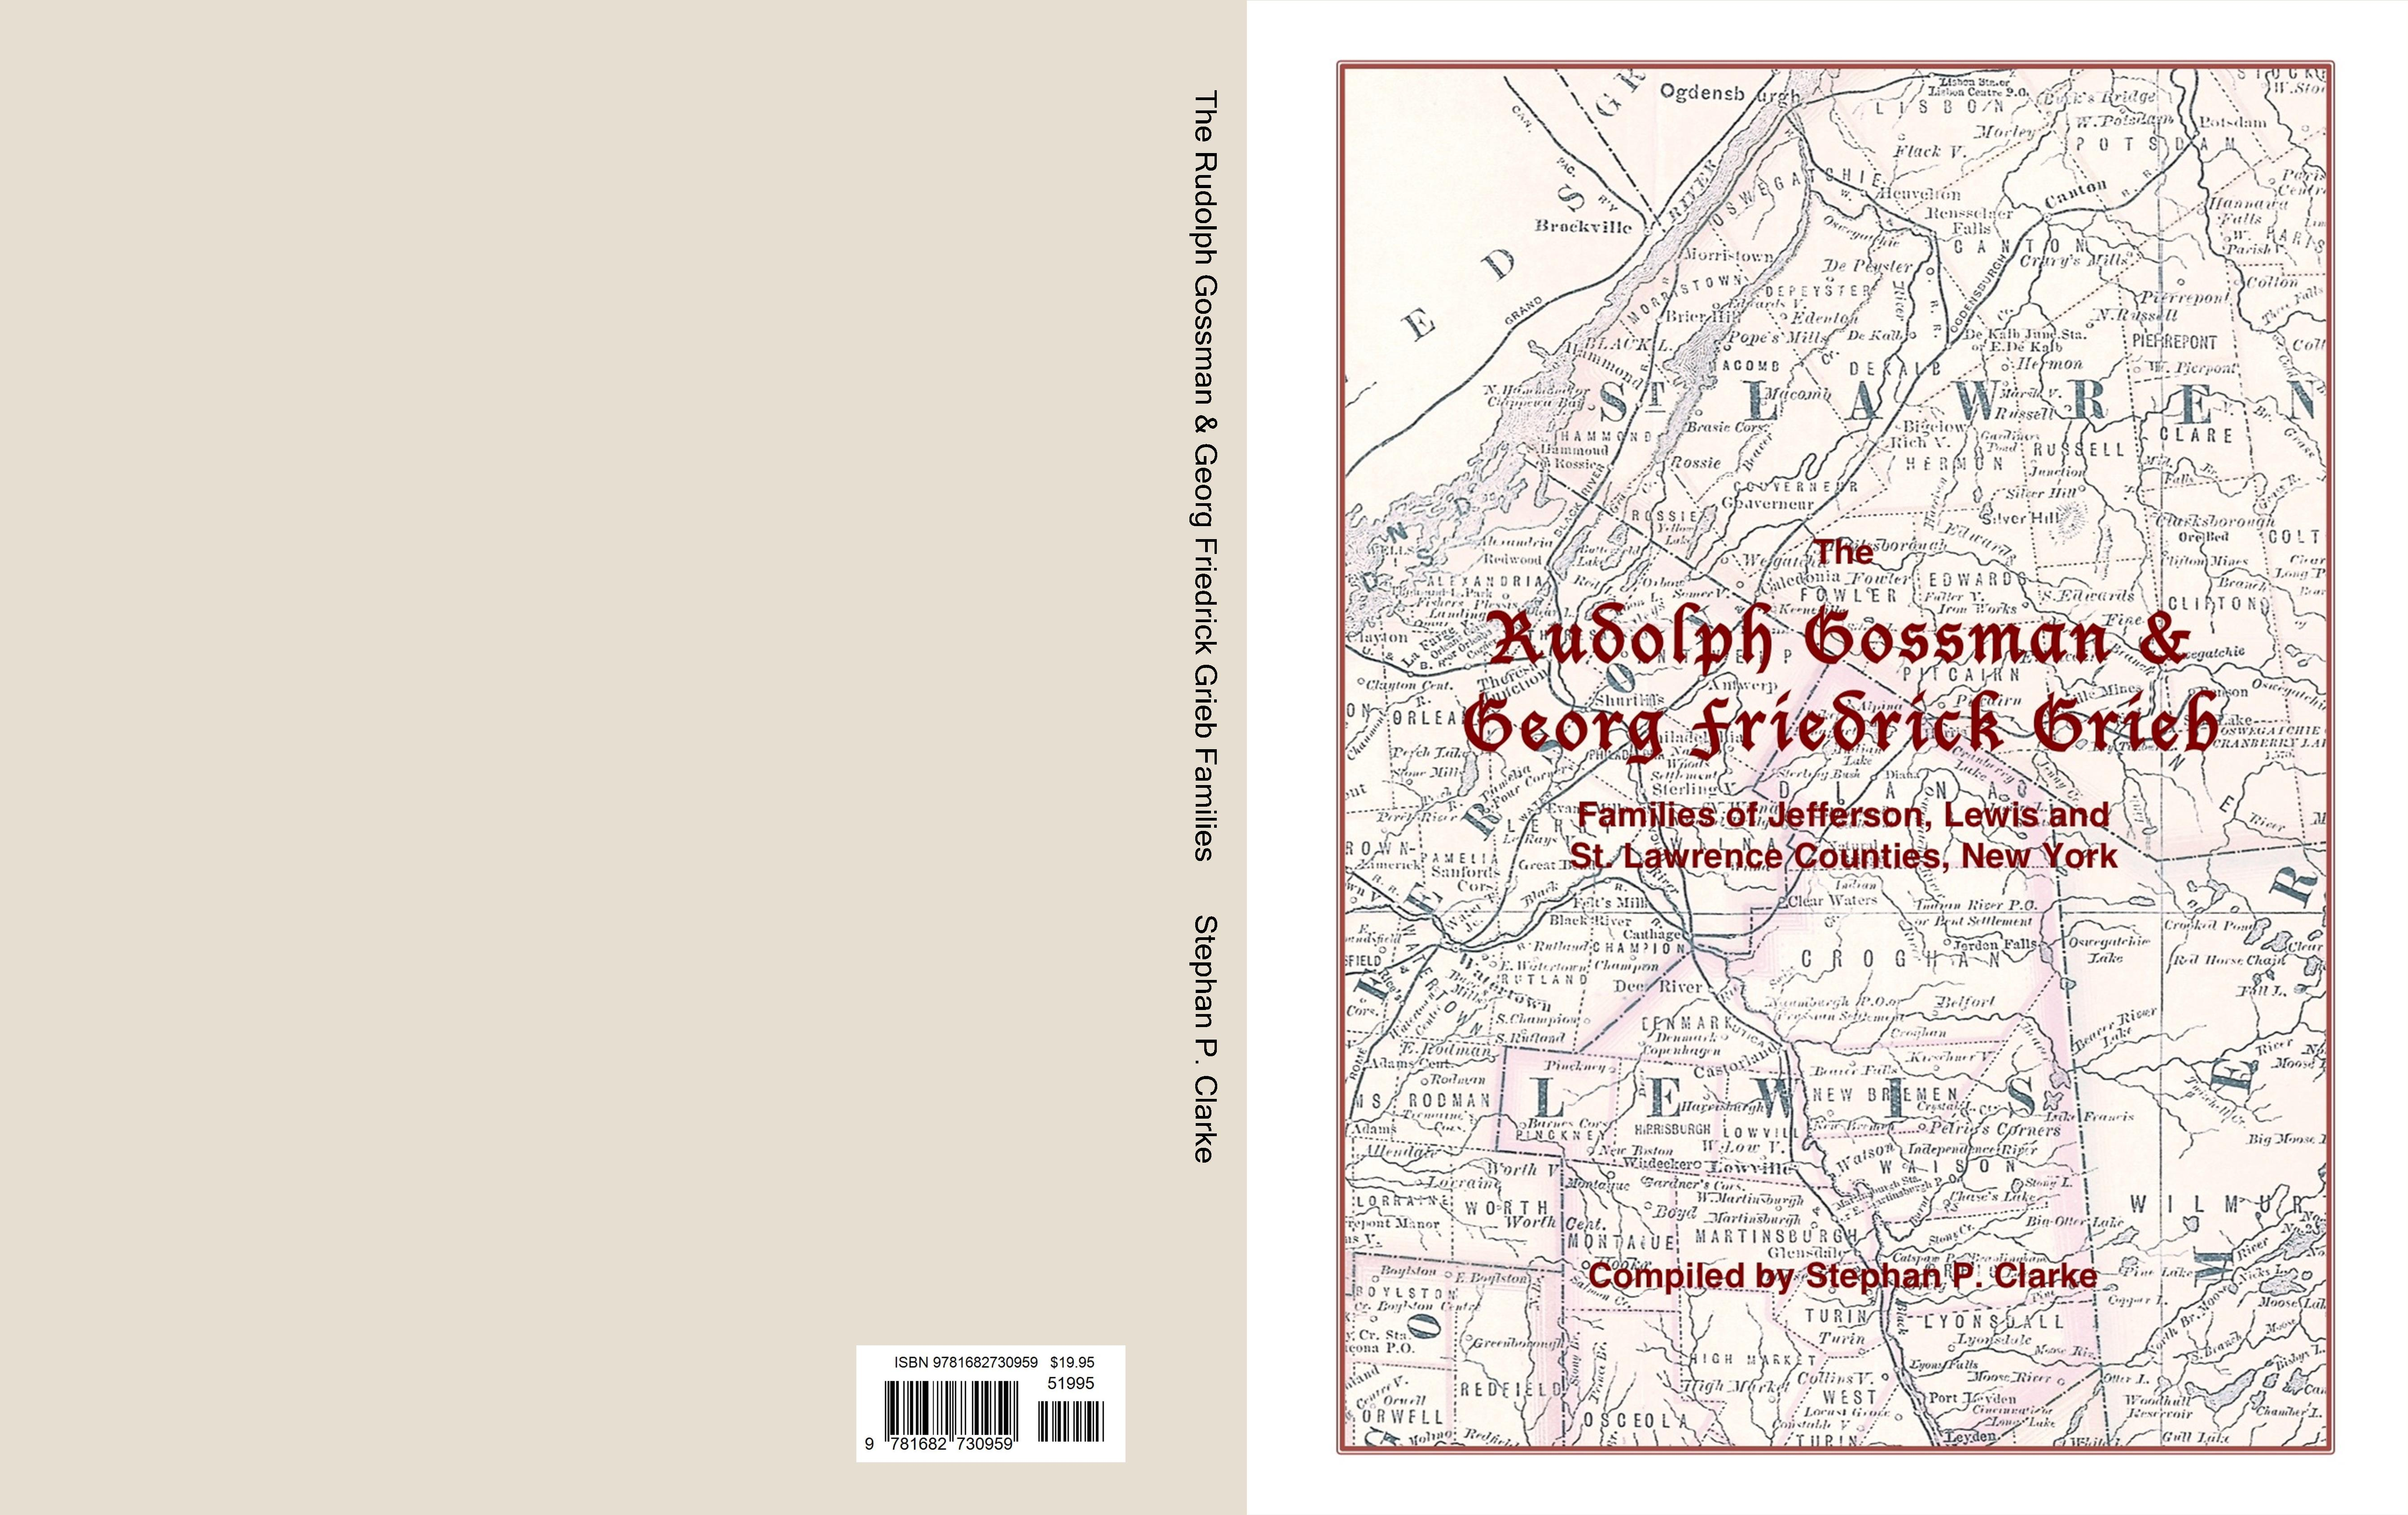 The Rudolph Gossman & Georg Friedrick Grieb Families cover image